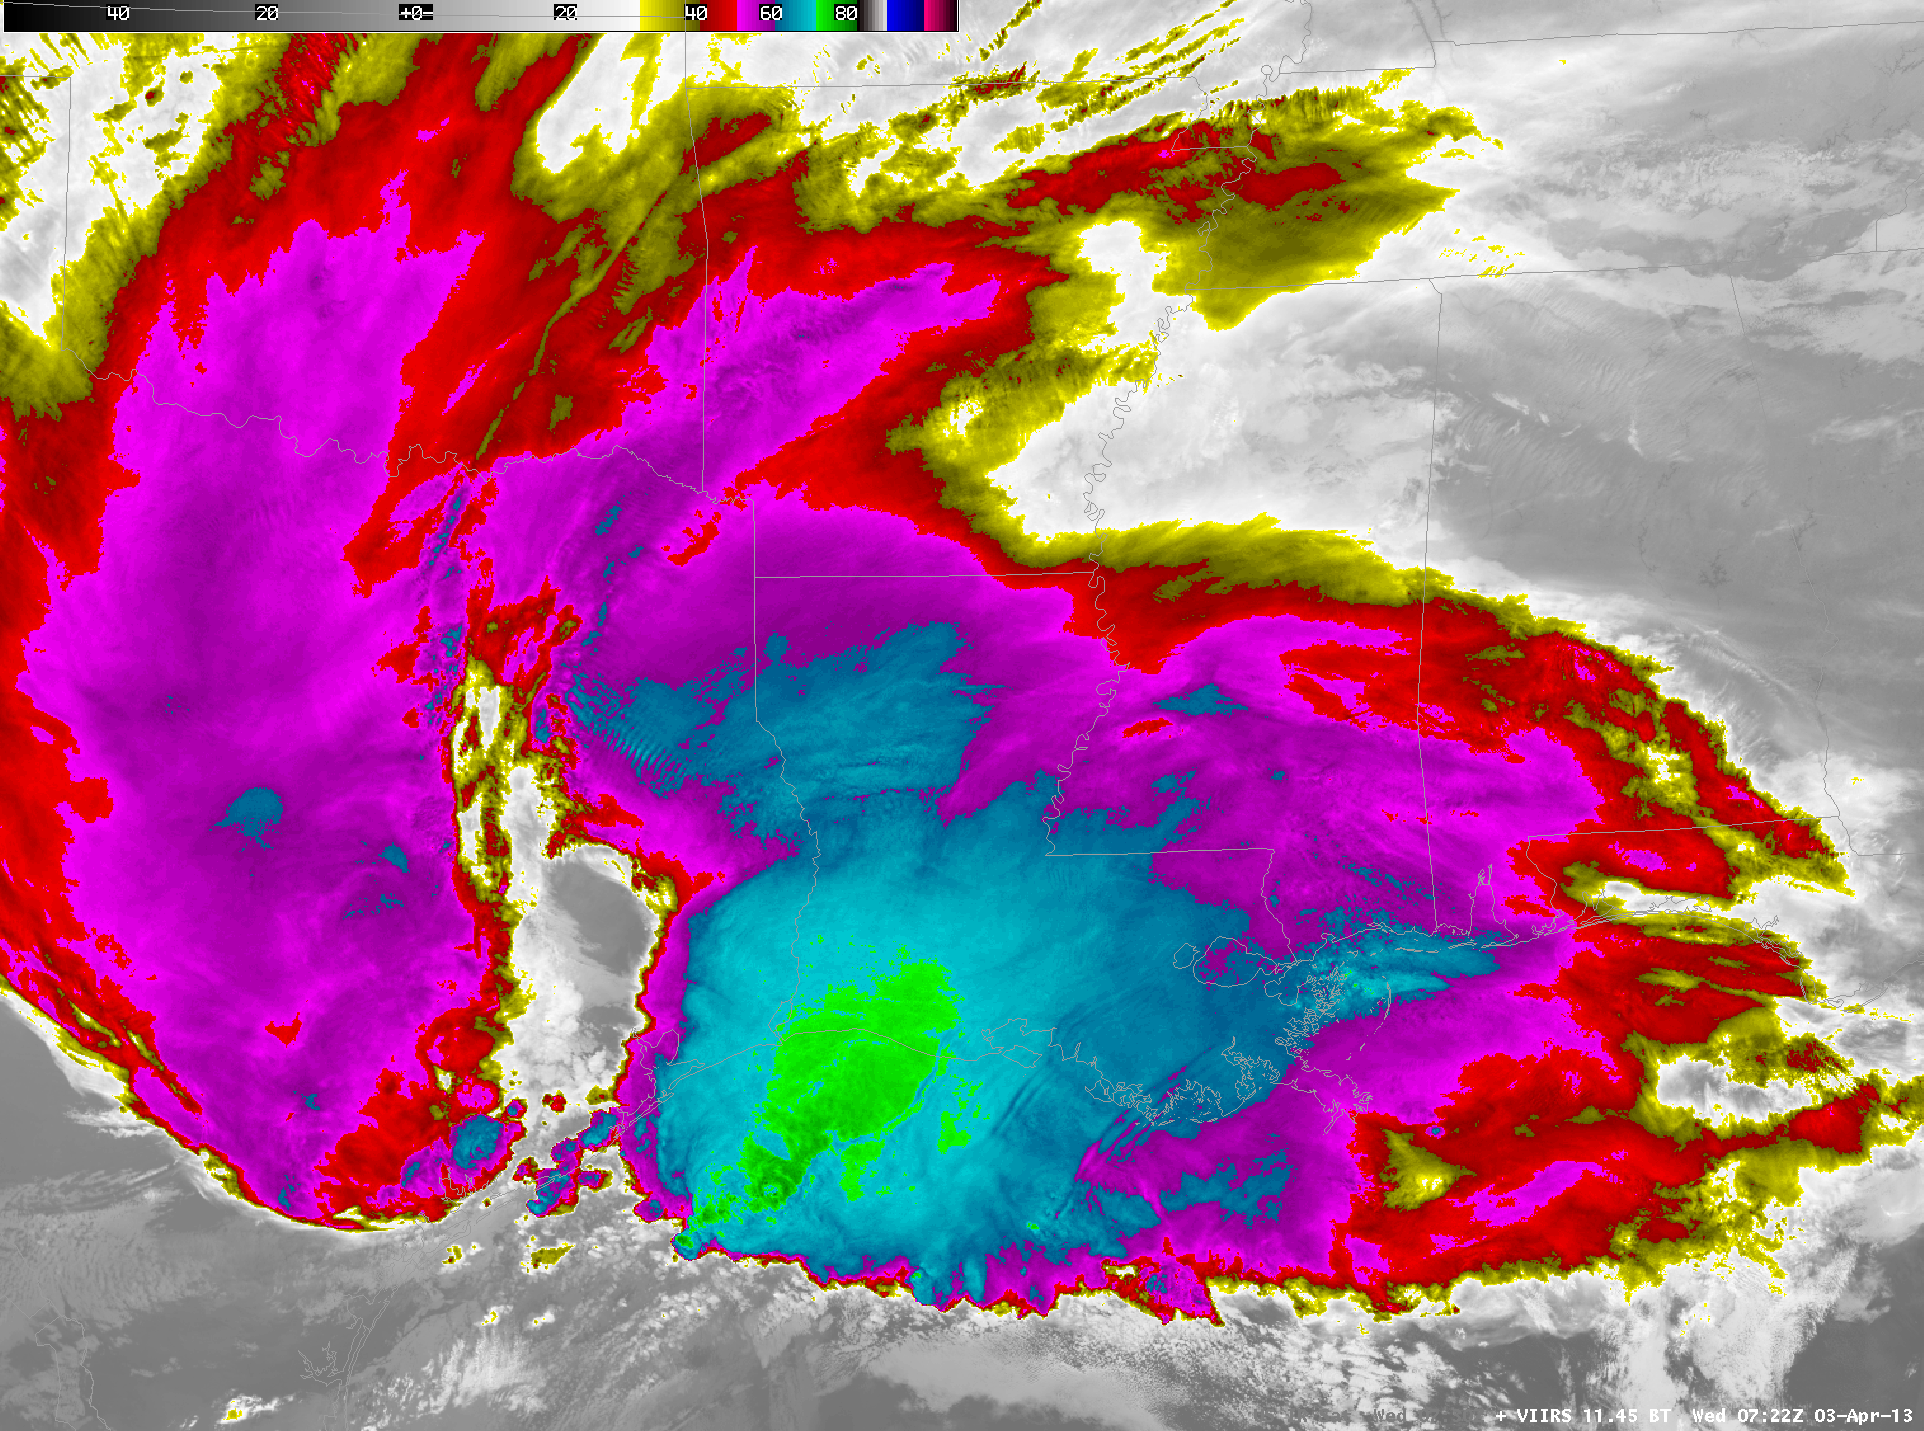 Suomi NPP VIIRS 11.45 µm IR and GOES-13 10.7 µm IR images (Click image to toggle)